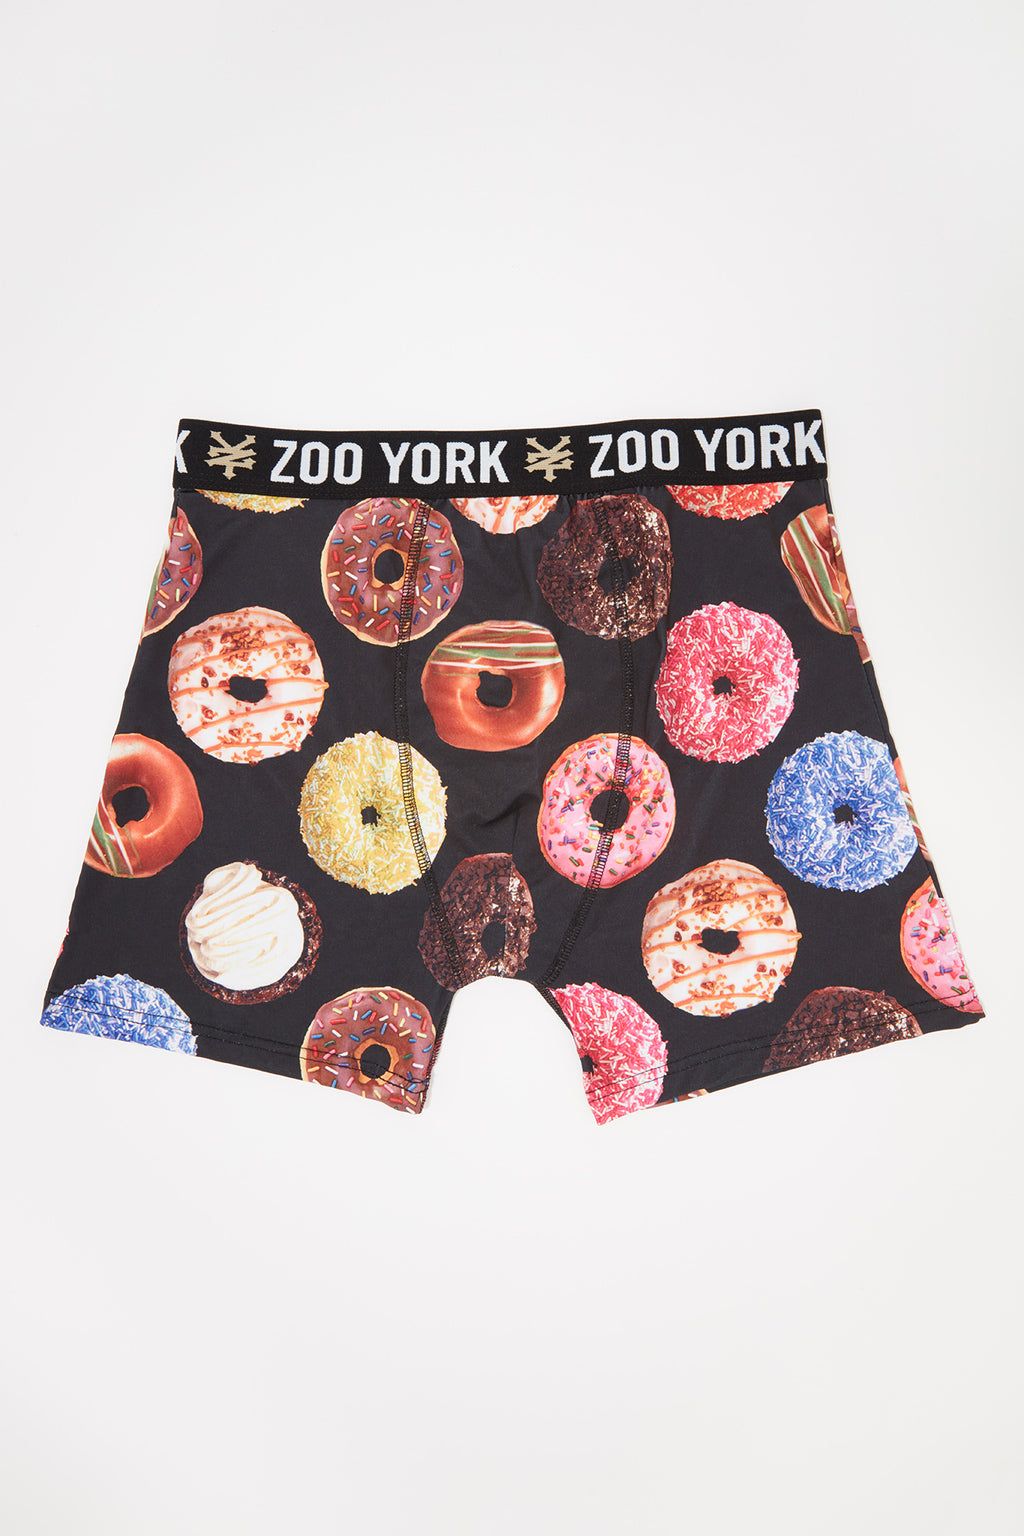 Zoo York Mens Donut Boxer Brief